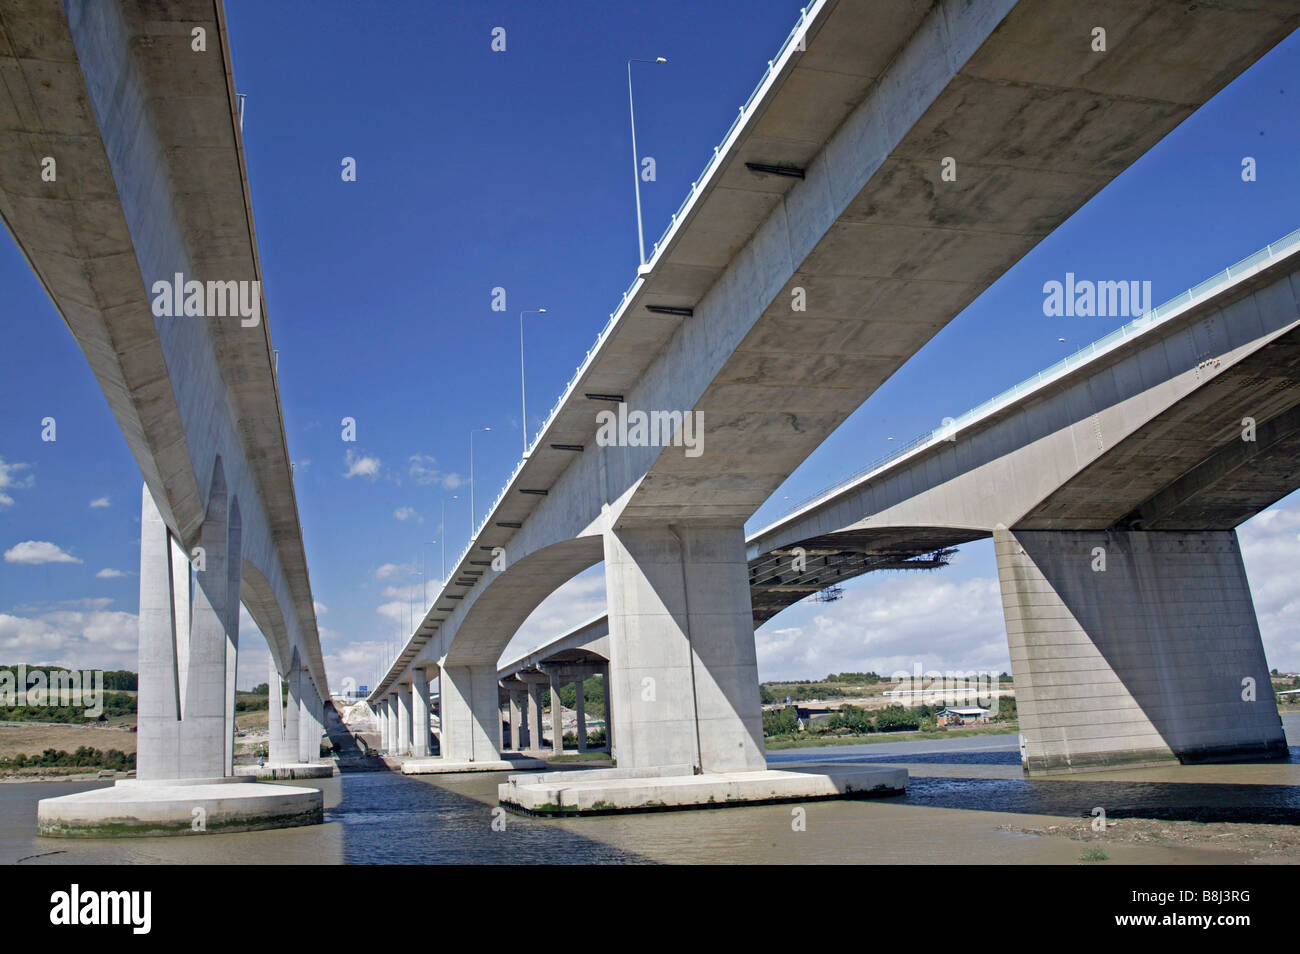 Estuary view of the three bridges that comprise the Medway Crossing. The slender High Speed 1 Eurostar bridge is - Stock Image